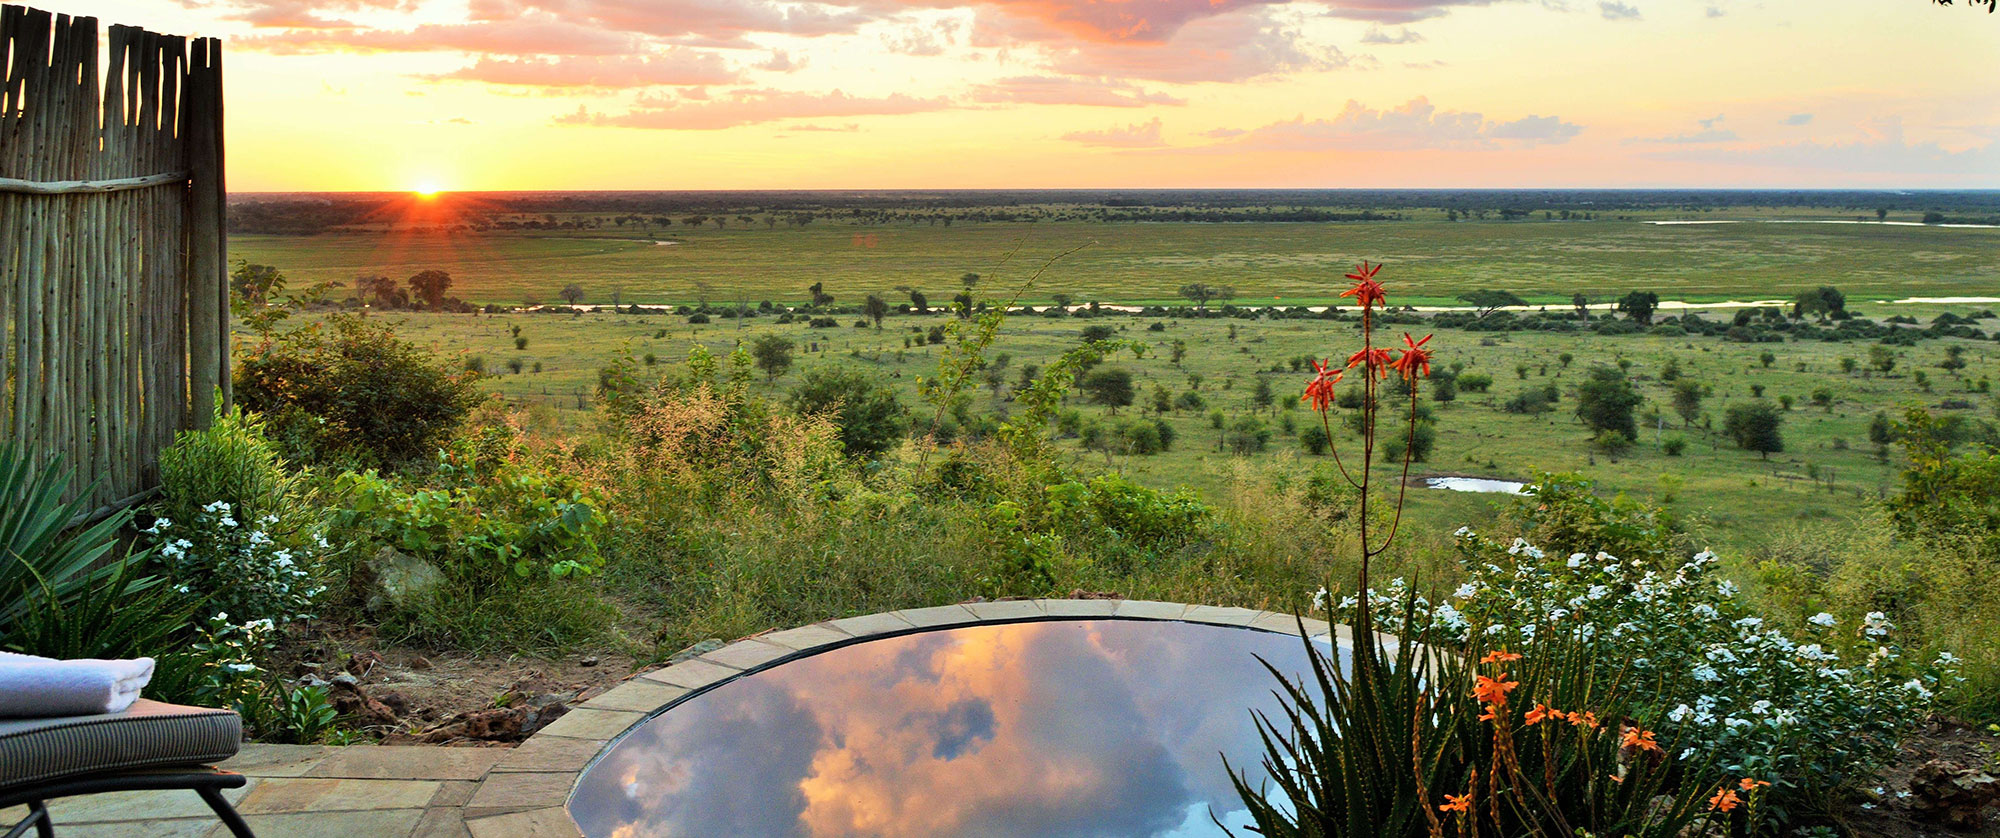 Luxury Safari Vacation - Ngoma Safari Lodge